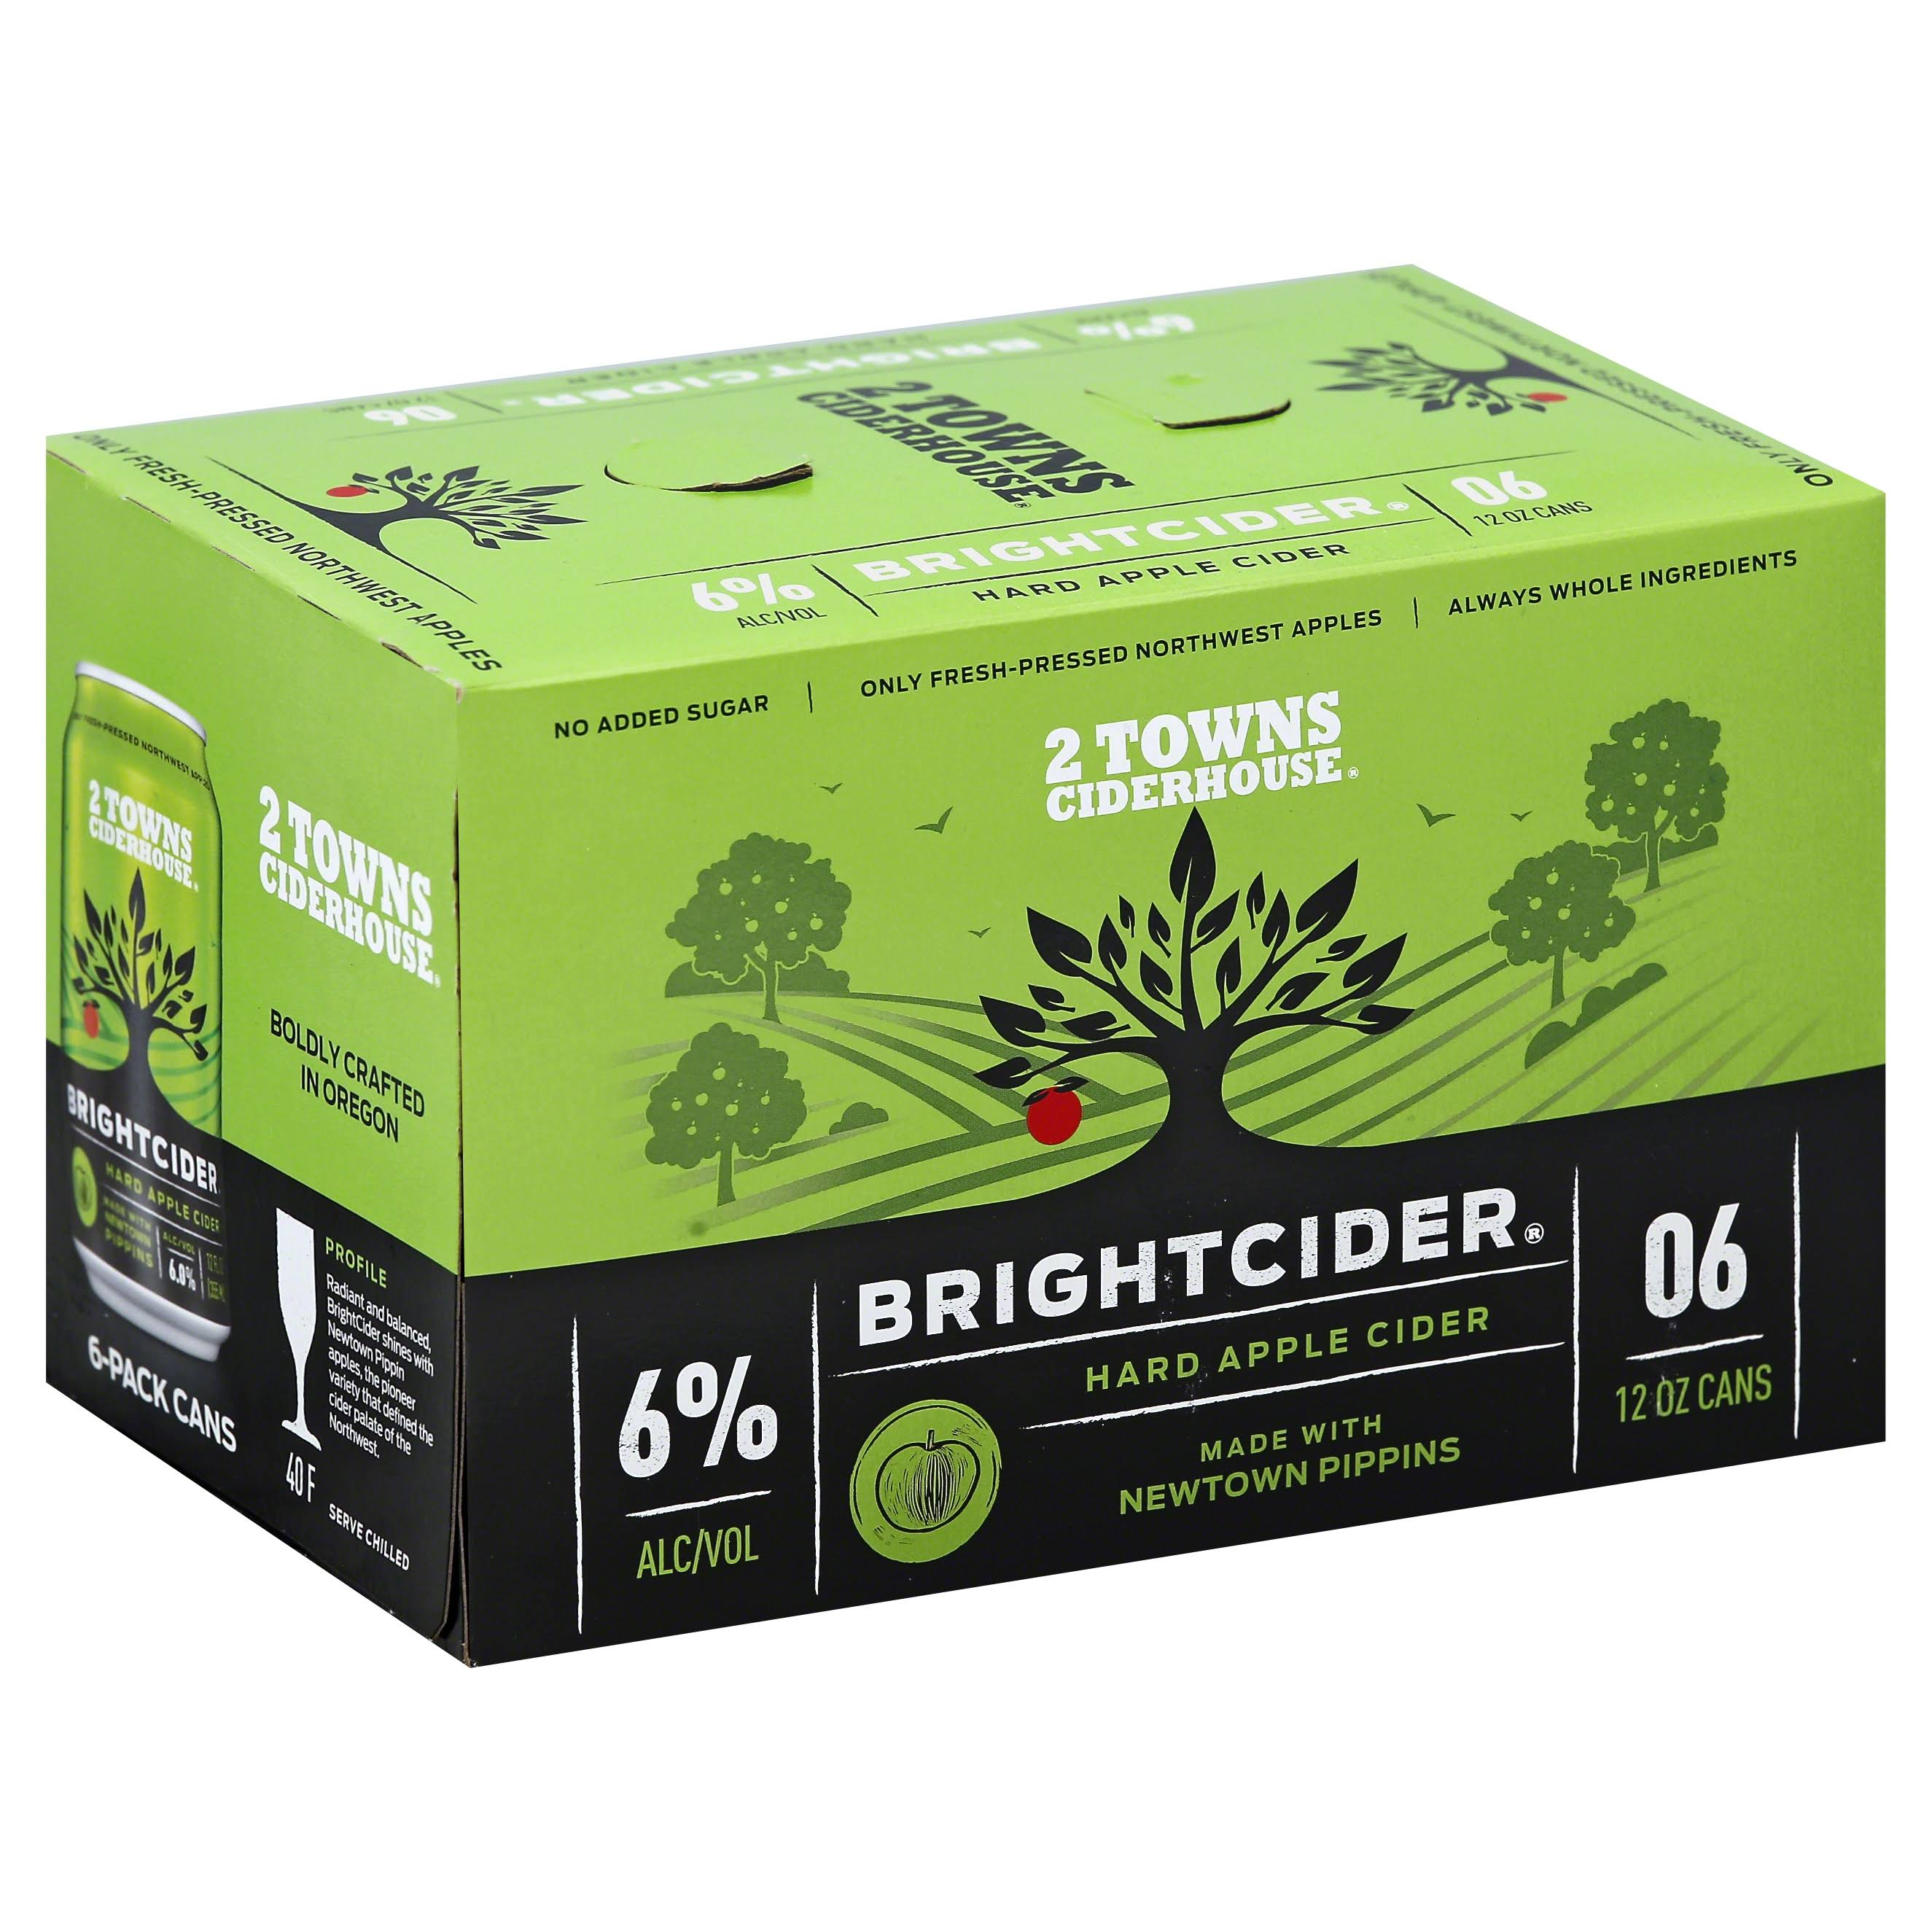 2 Towns Ciderhouse Bright Cider - 6 Cans